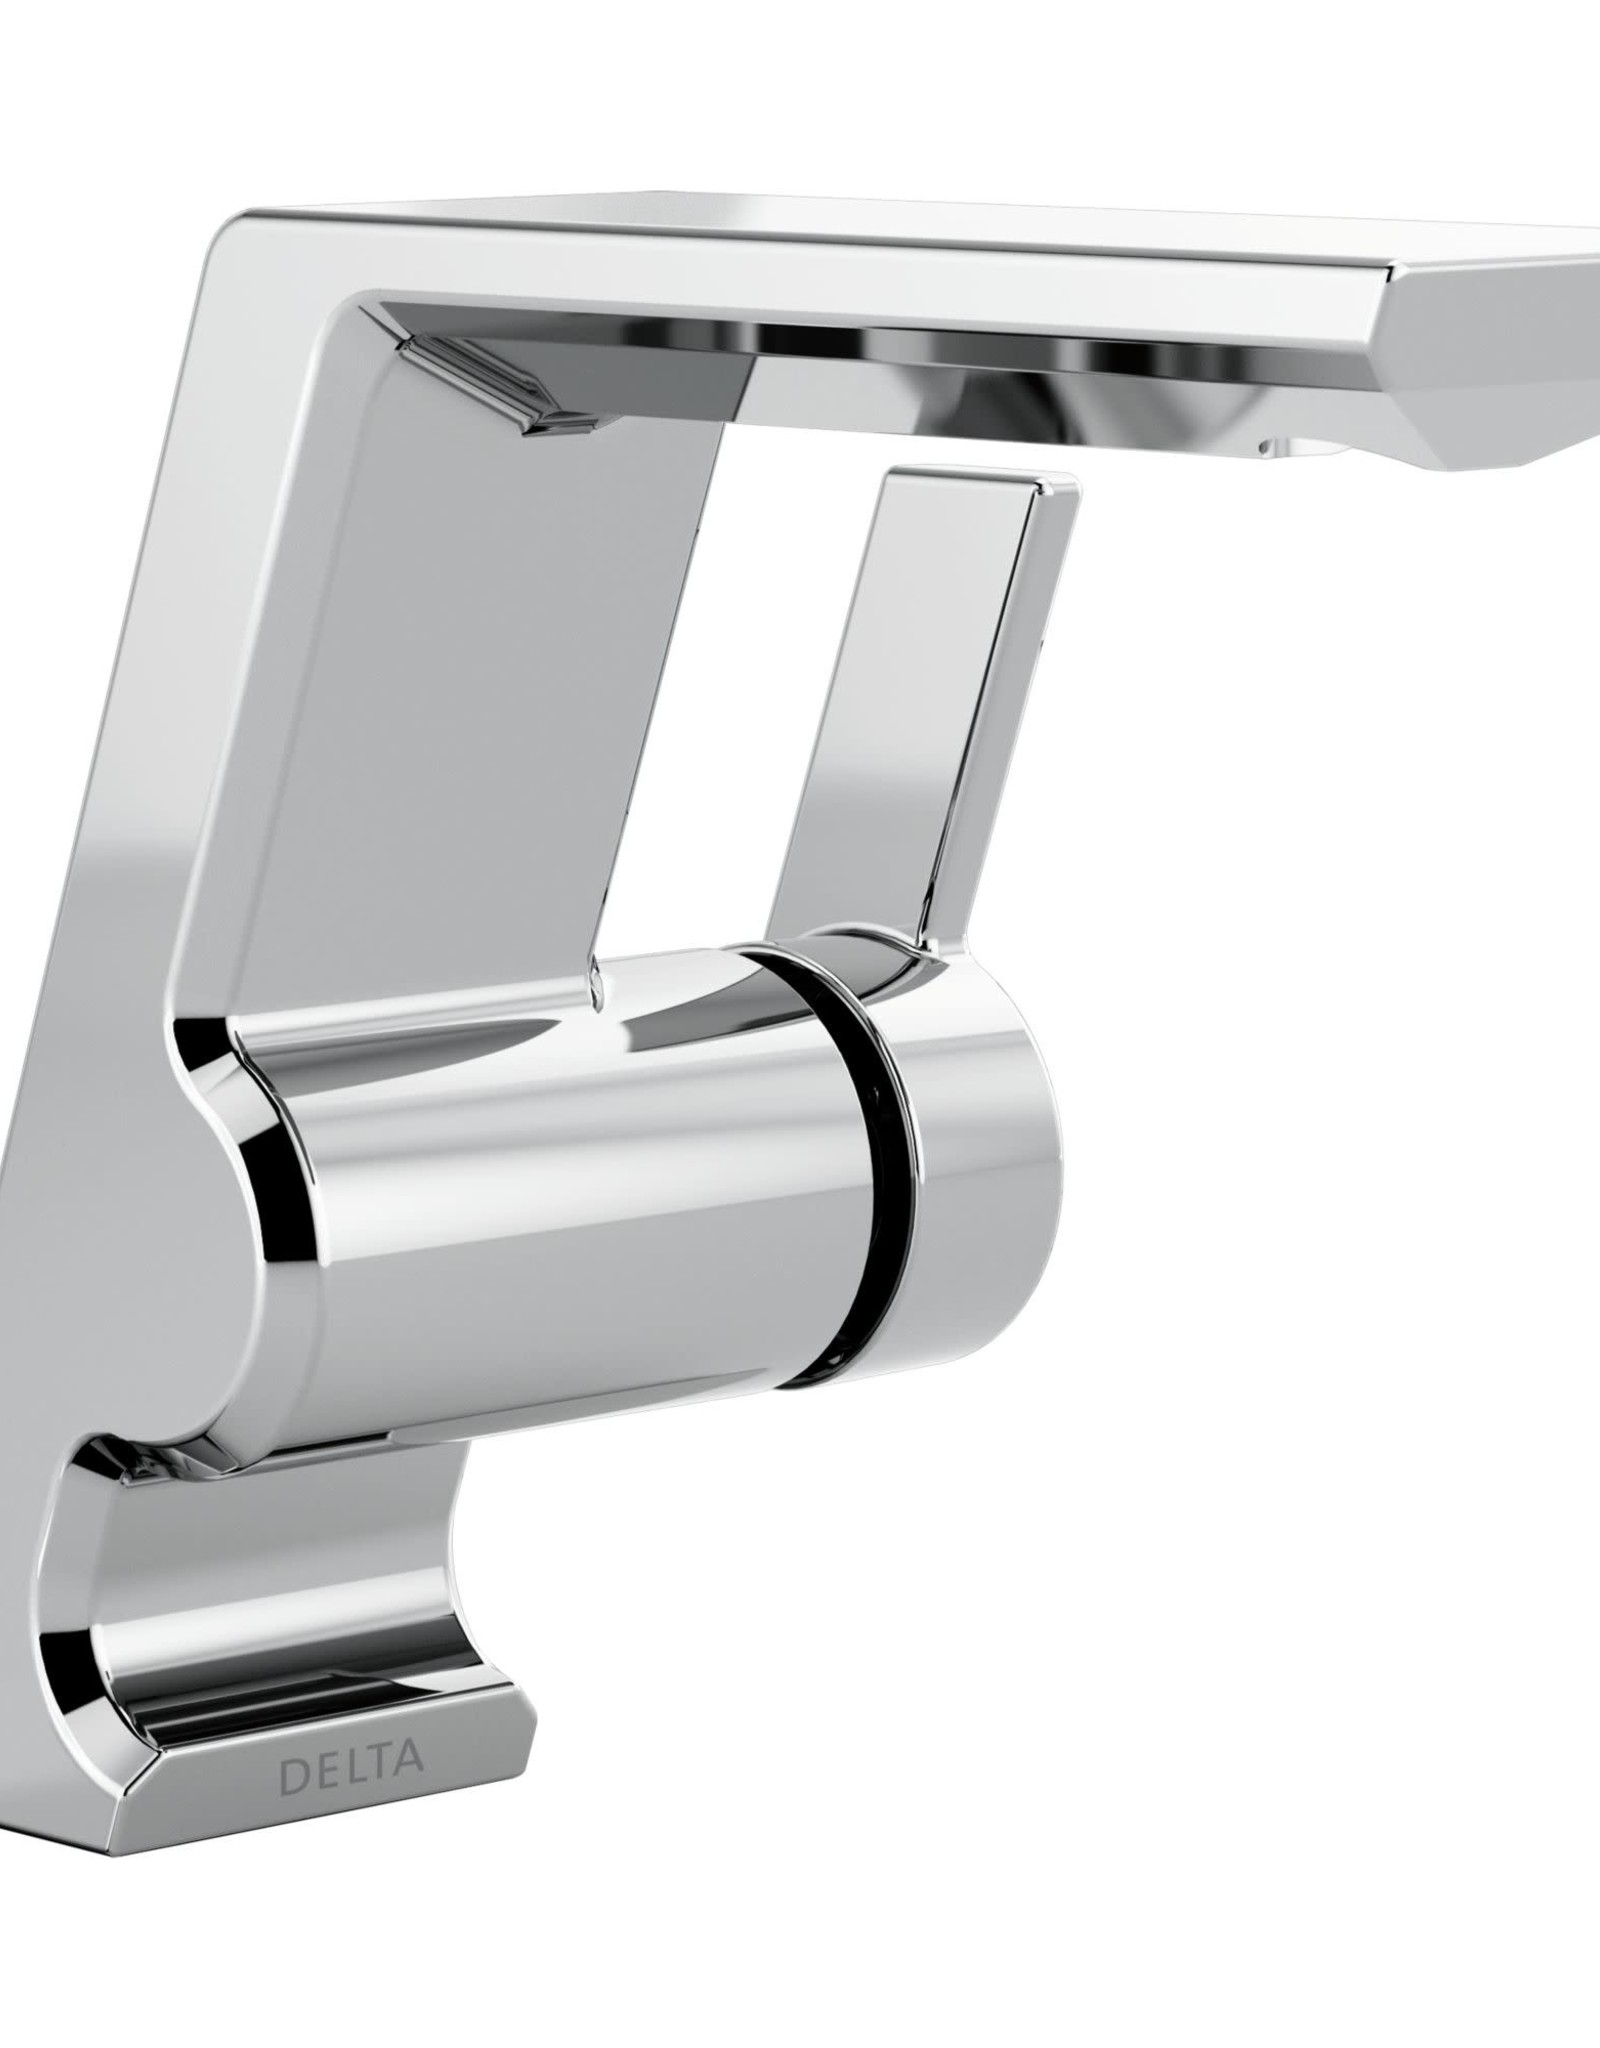 Delta DELTA PIVOTAL - CHROME SINGLE HANDLE LAVATORY FAUCET